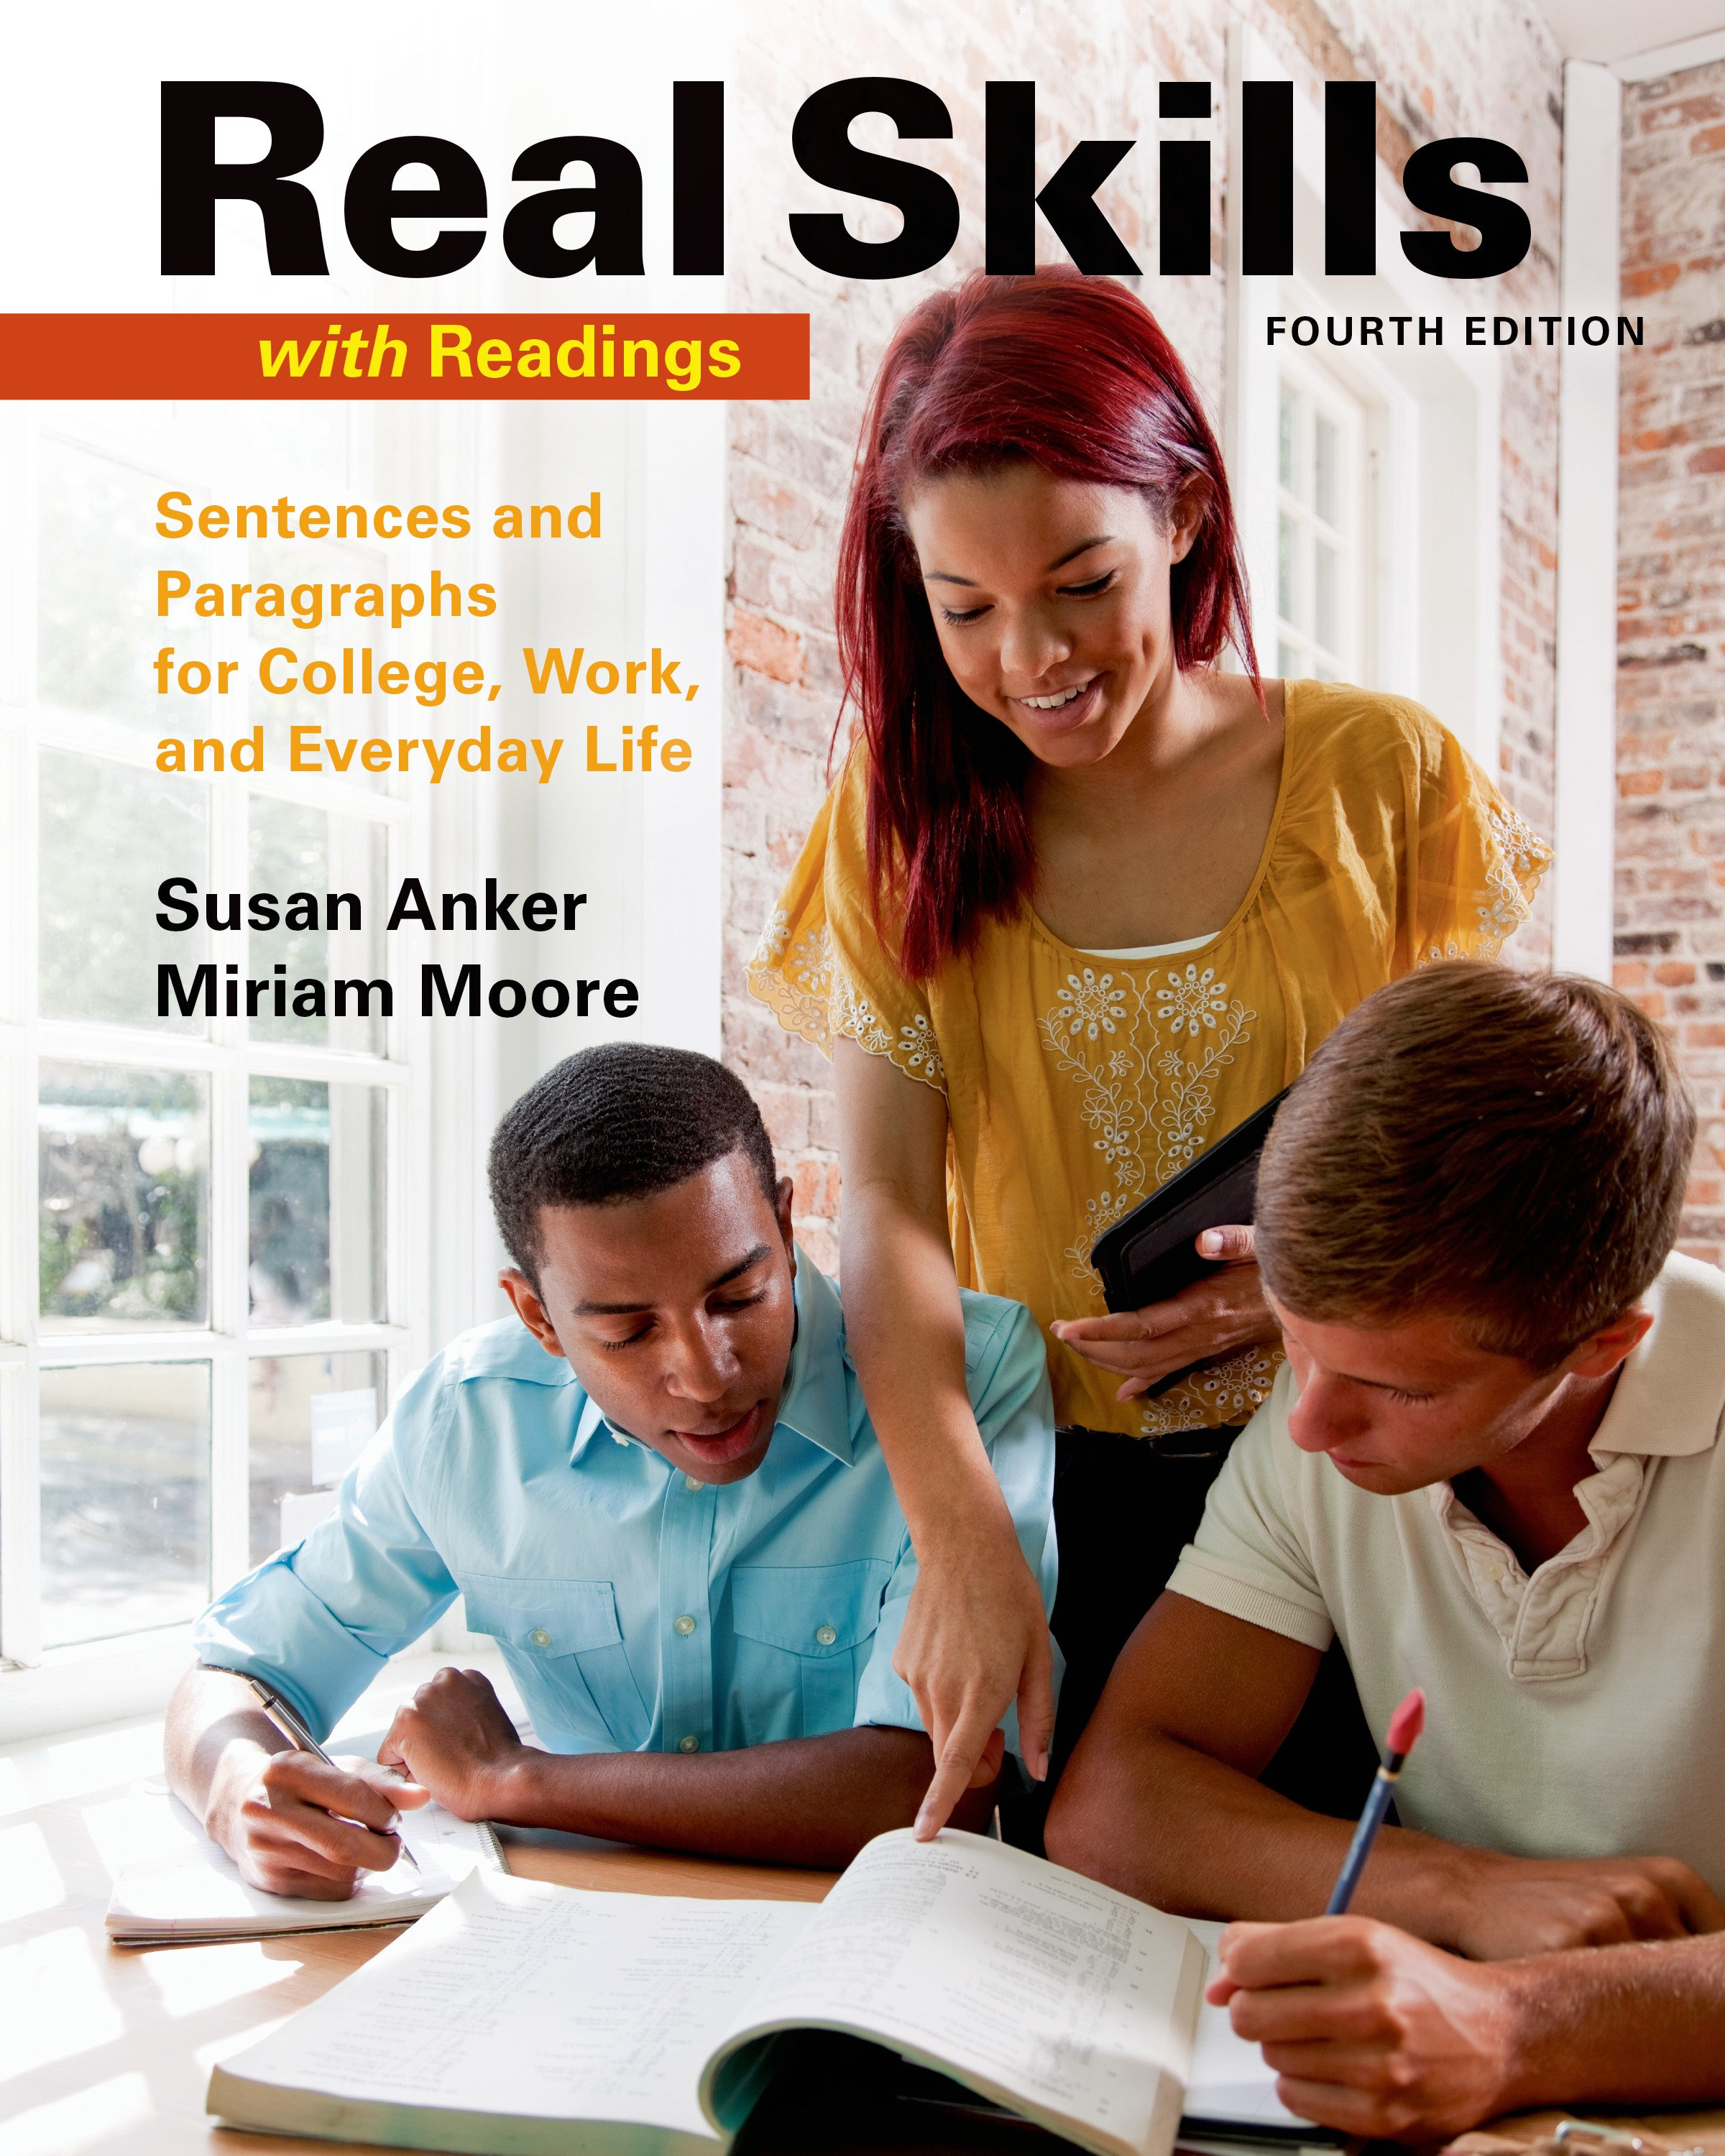 003 Real Essays With Readings 5th Edition Essay Wonderful Answer Key Online Ebook Full